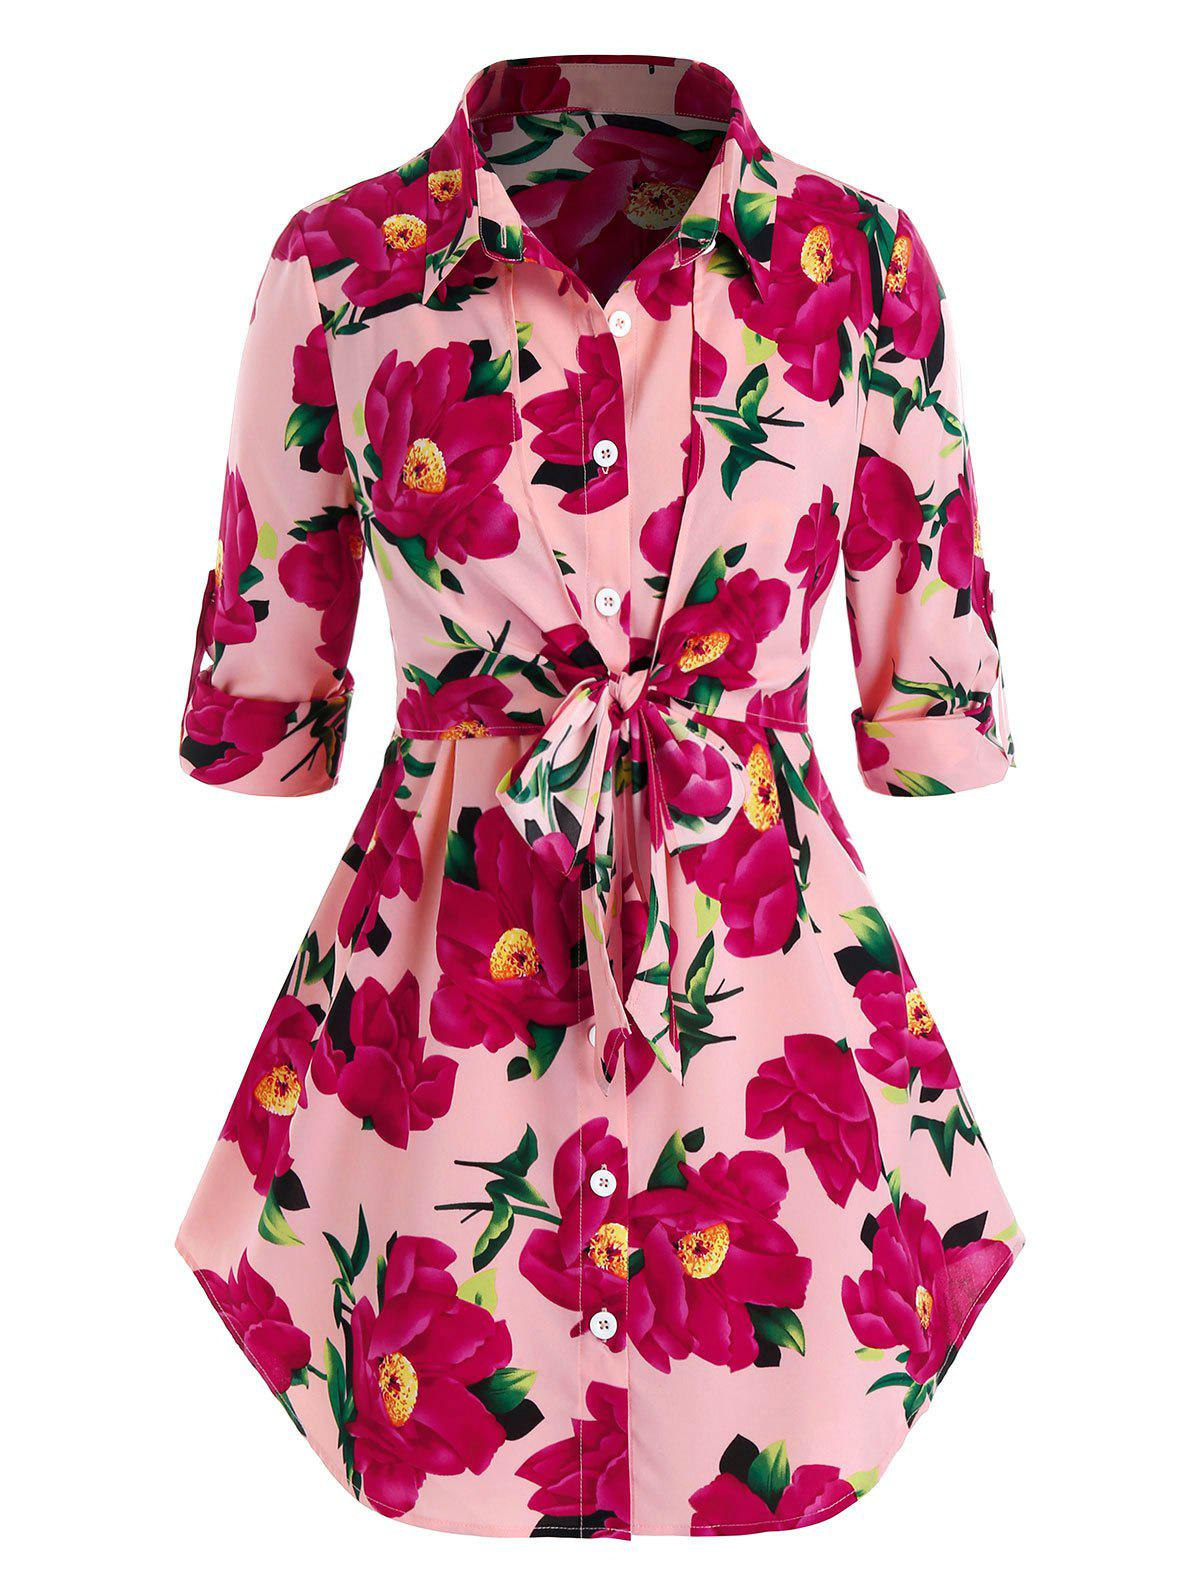 Plus Size Flower Print Roll Up Sleeve Tie Tunic Blouse - PINK 4X